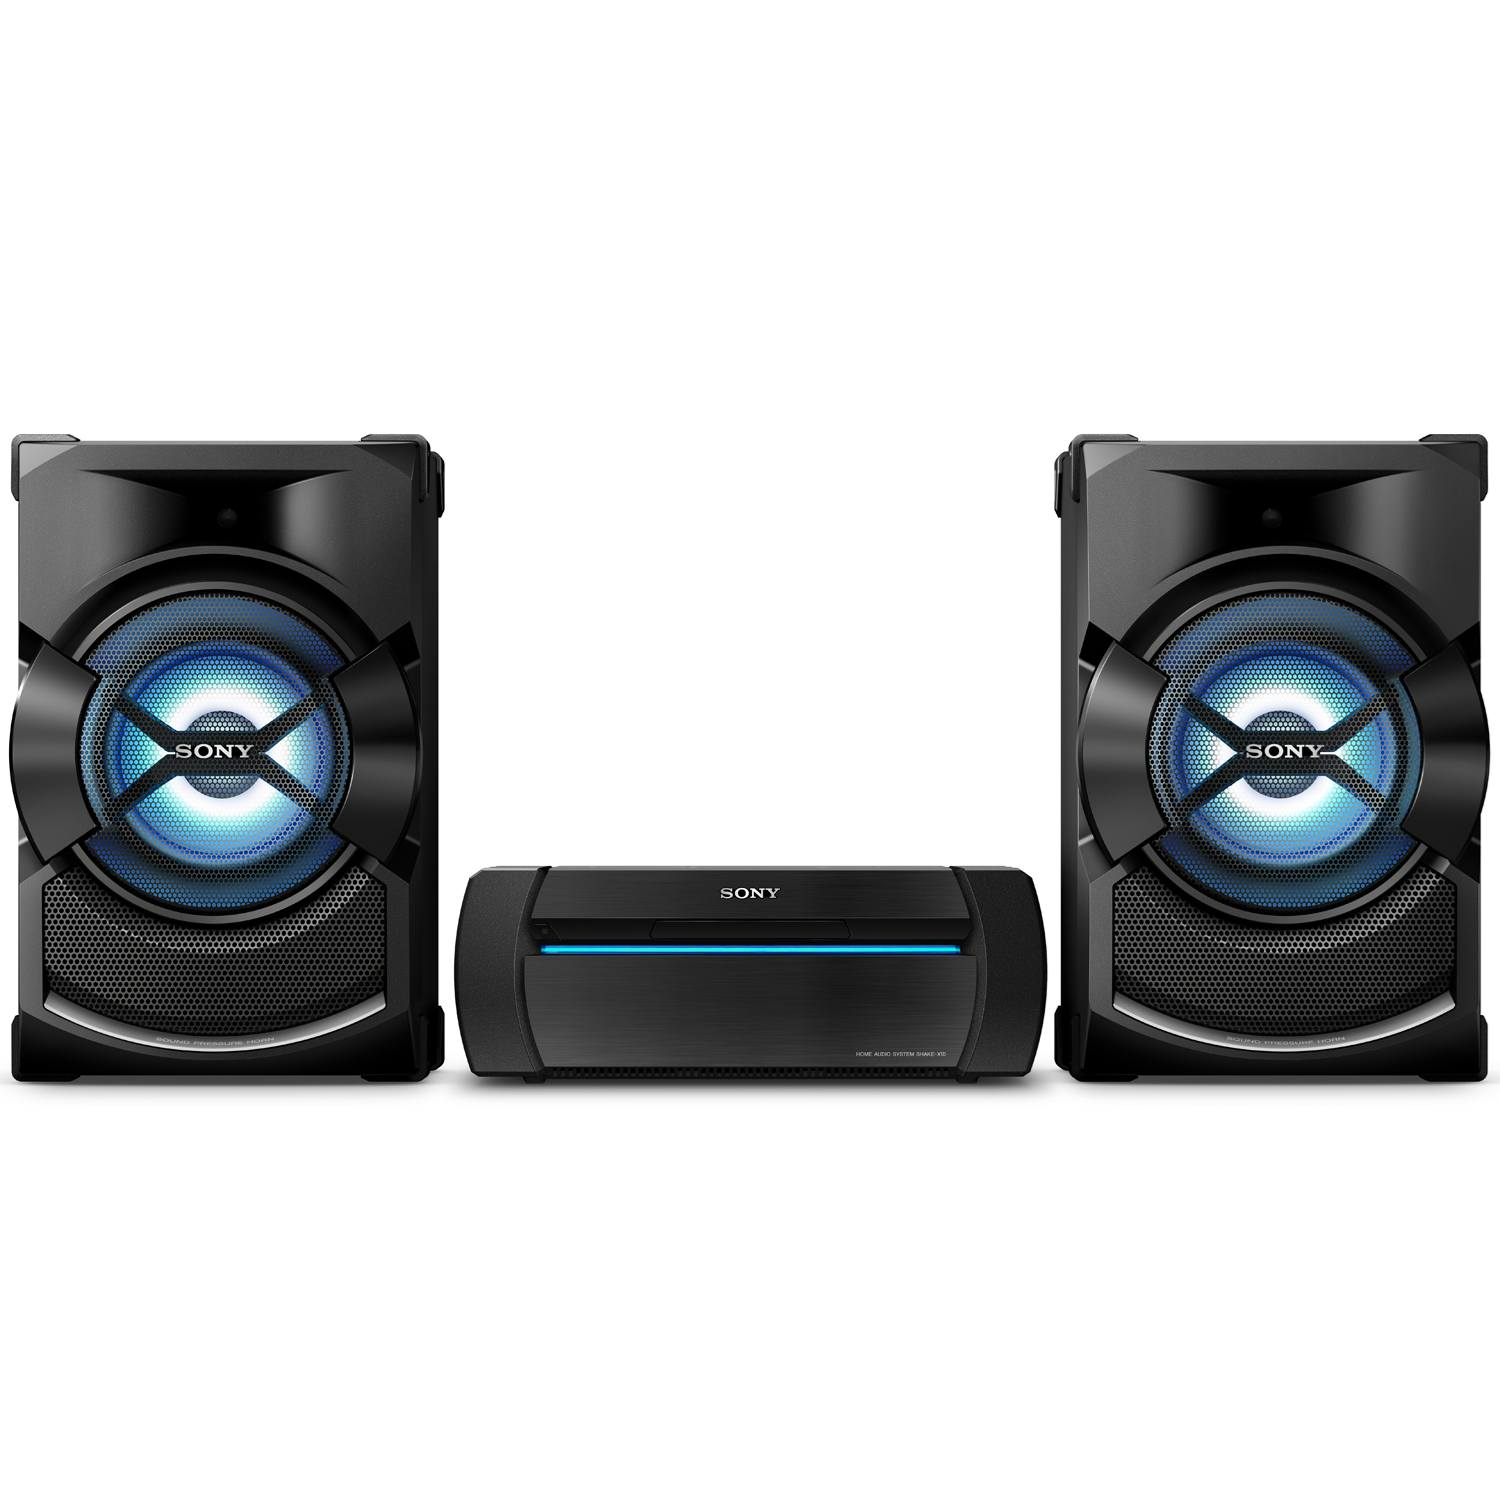 sony shake x1d 1200w home audio system with bluetooth nfc. Black Bedroom Furniture Sets. Home Design Ideas